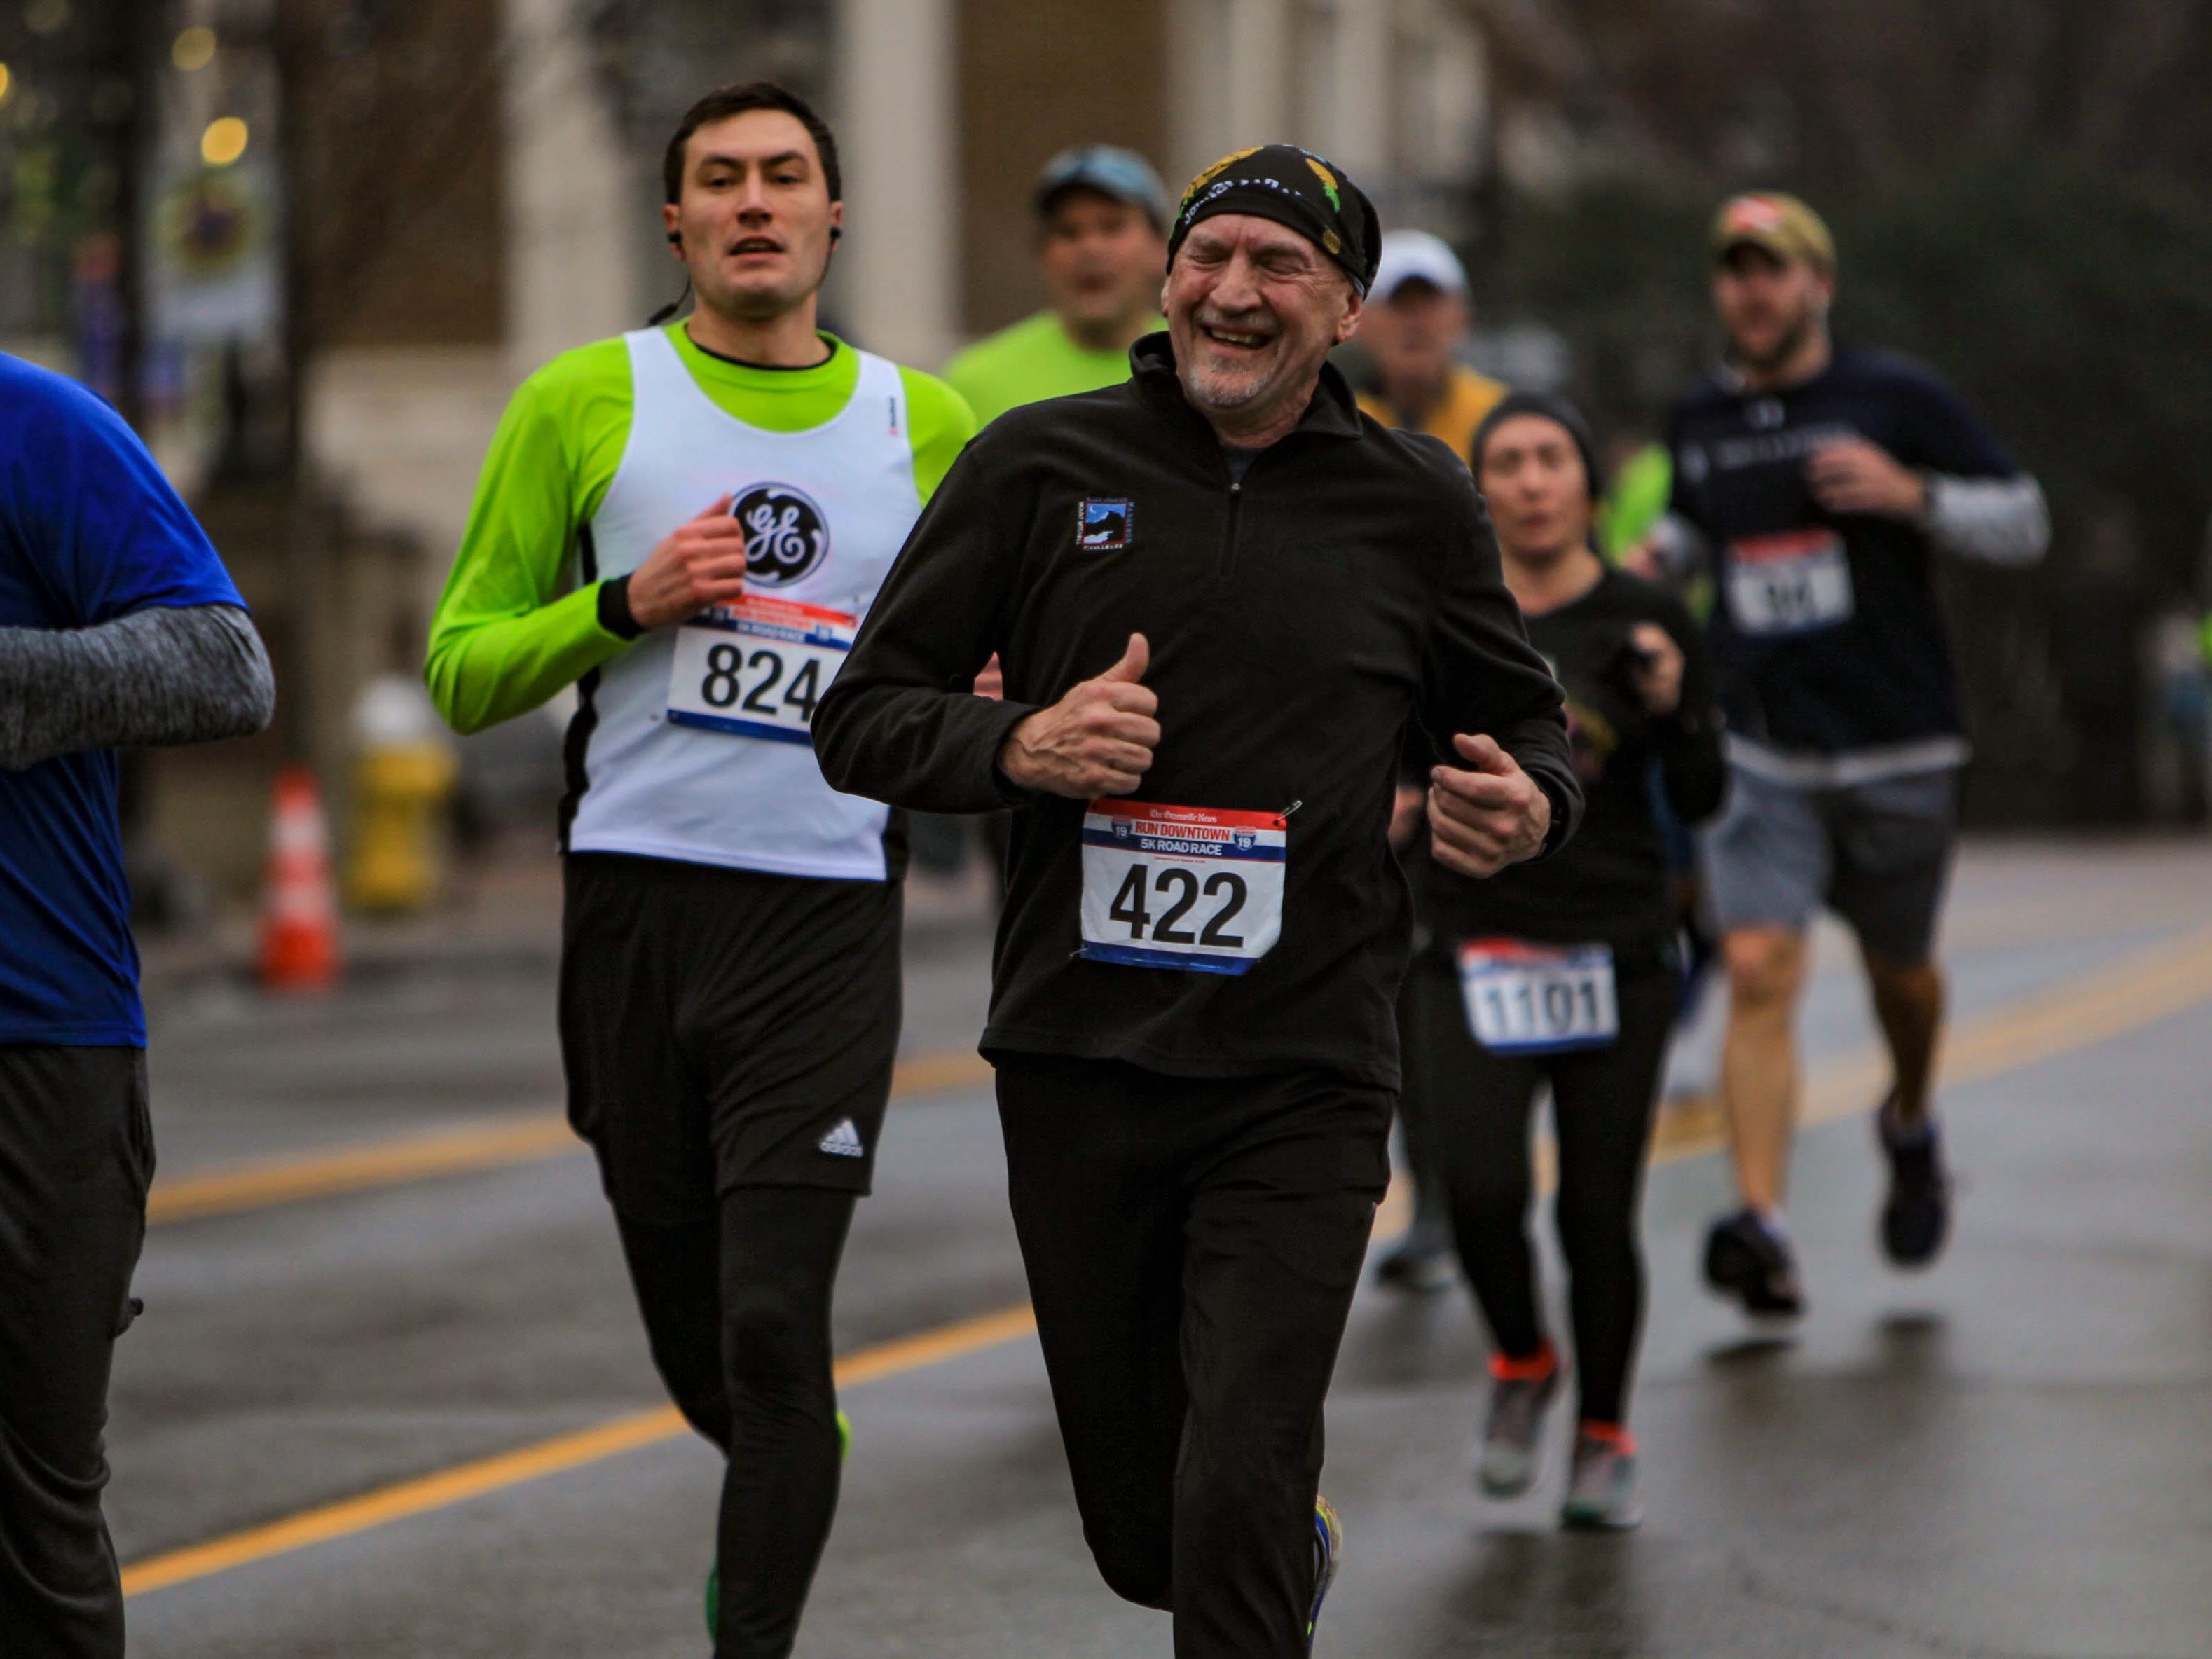 Runners approach the finish line at The Greenville News Run Downtown 5k on Jan. 19, 2019.